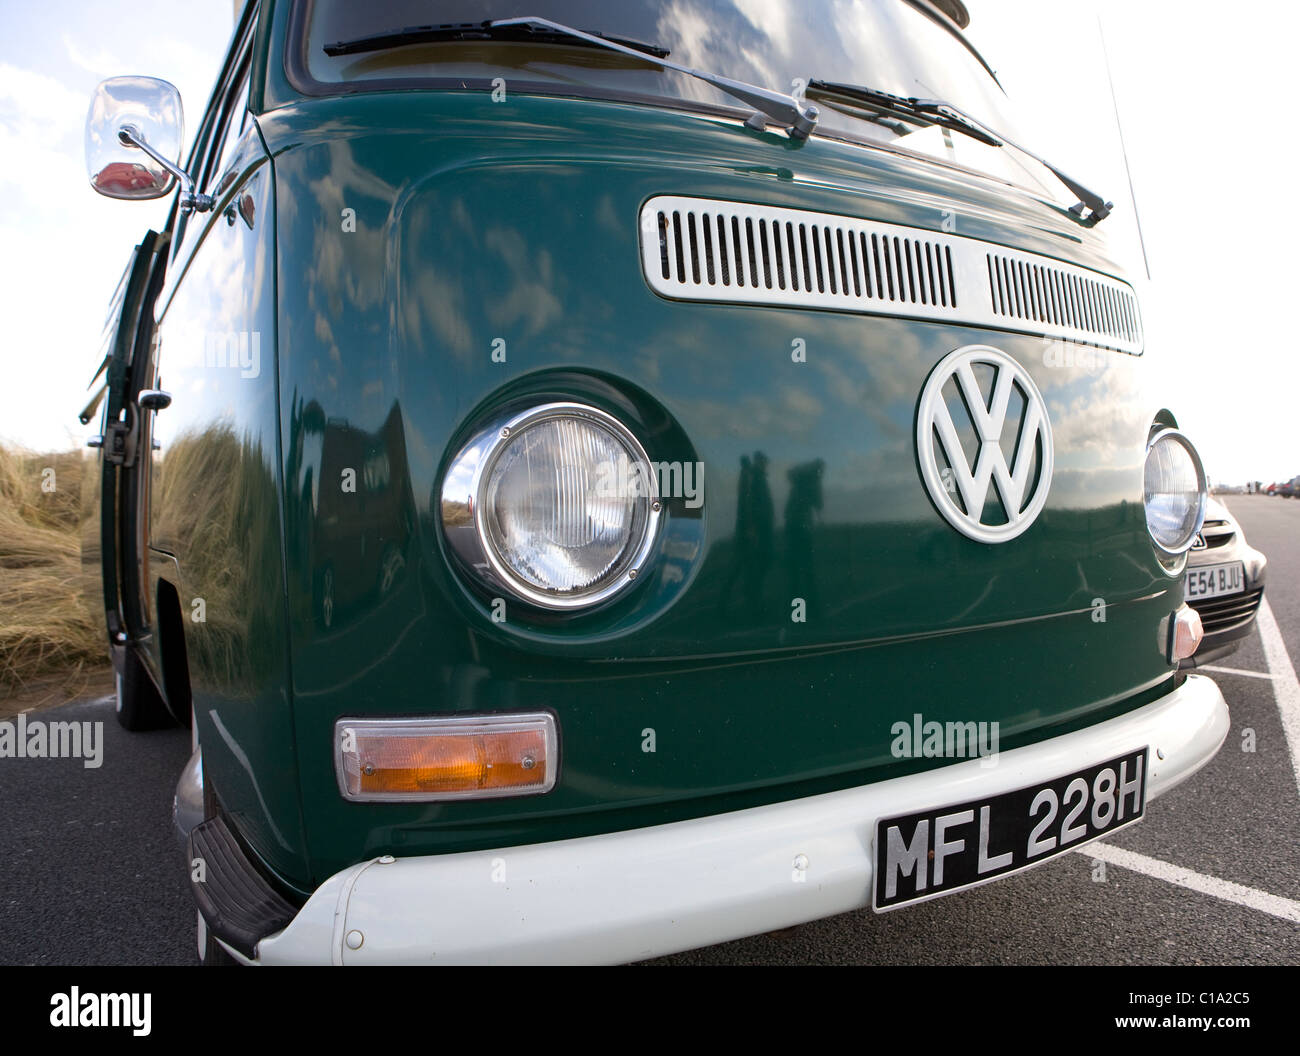 Volkswagen Front Close Up Vintage Vw Camper Van Vehicles Old Stock